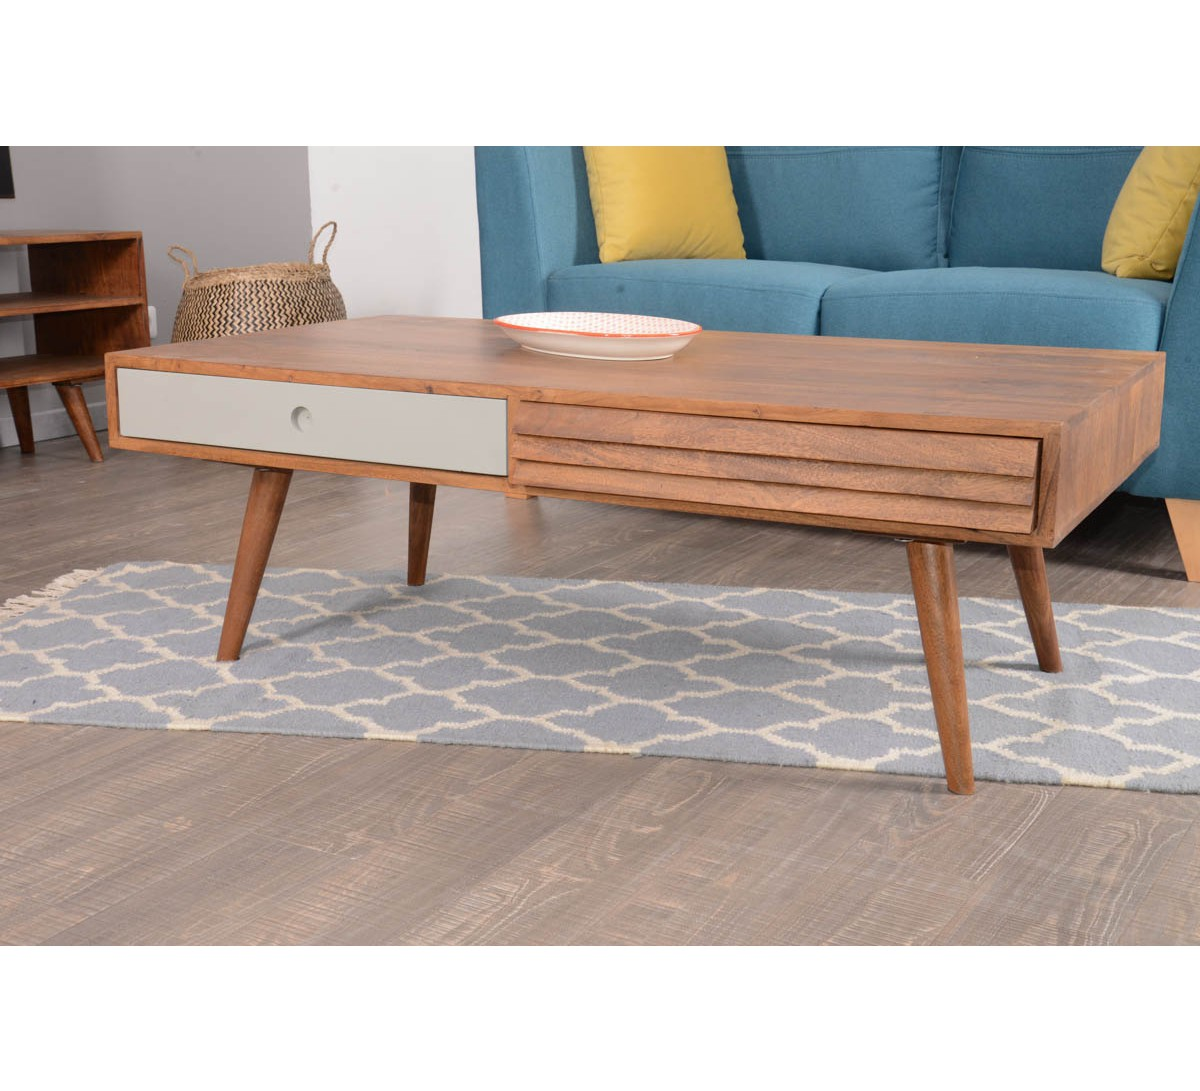 Table basse scandinave turquoise